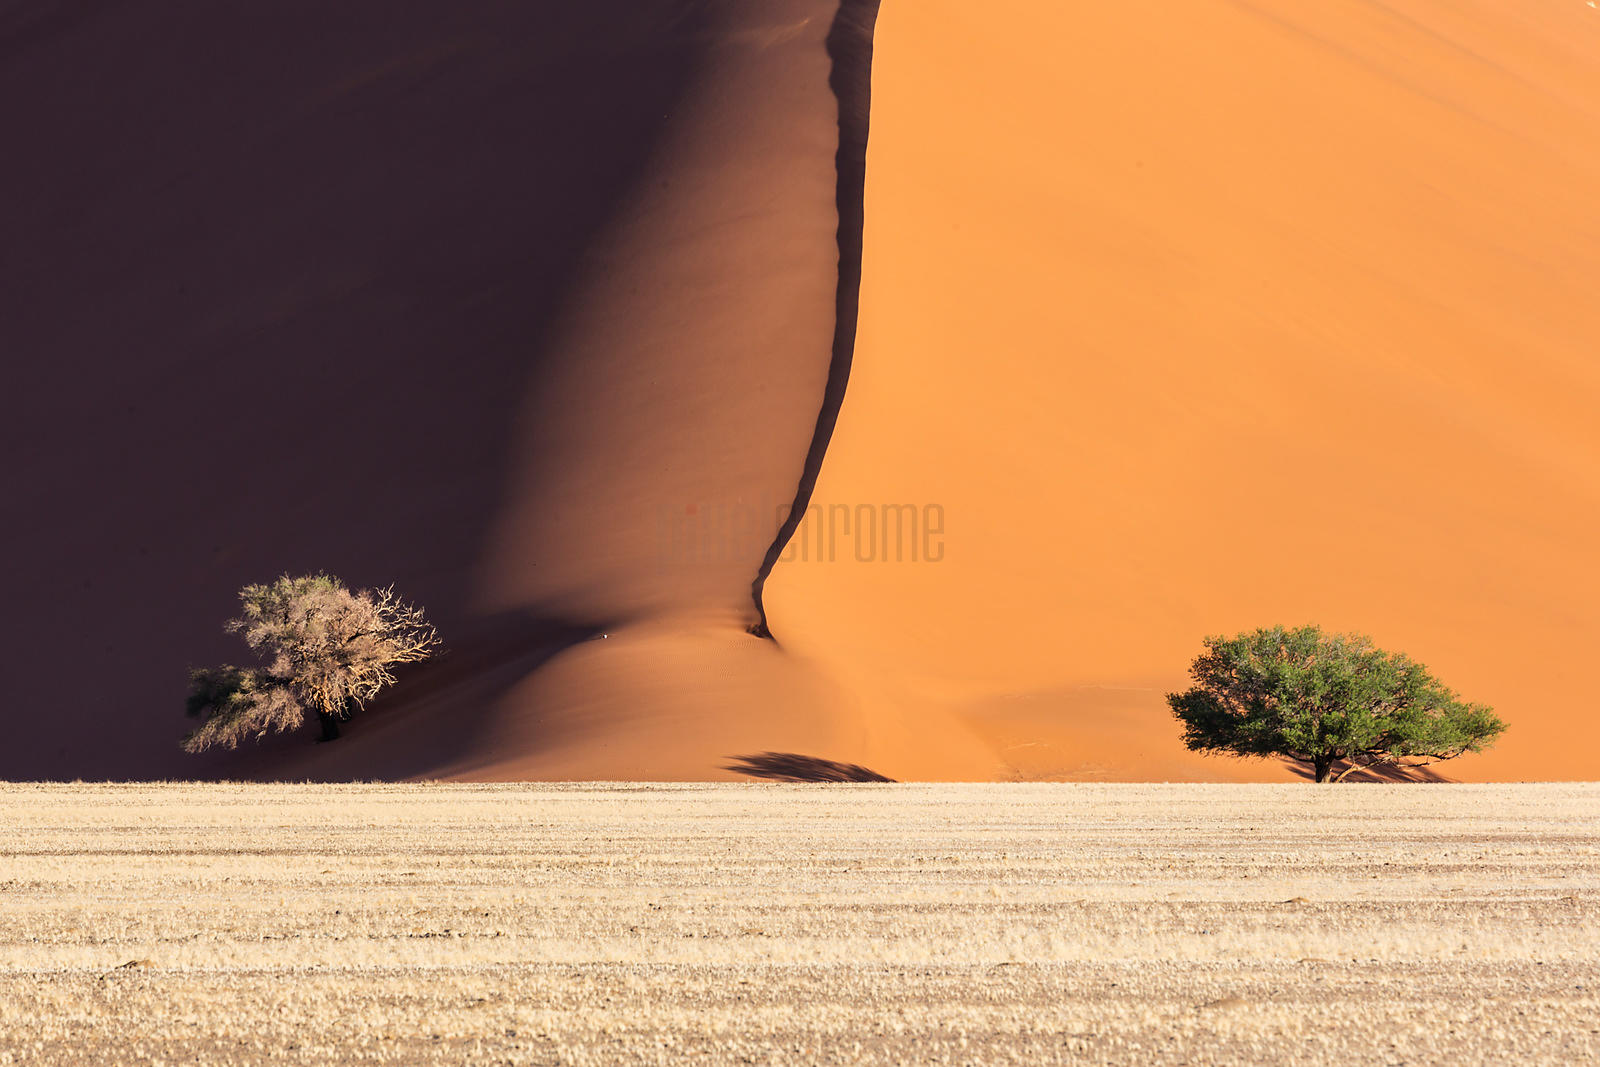 Camelthorn Trees against Namib Dunes